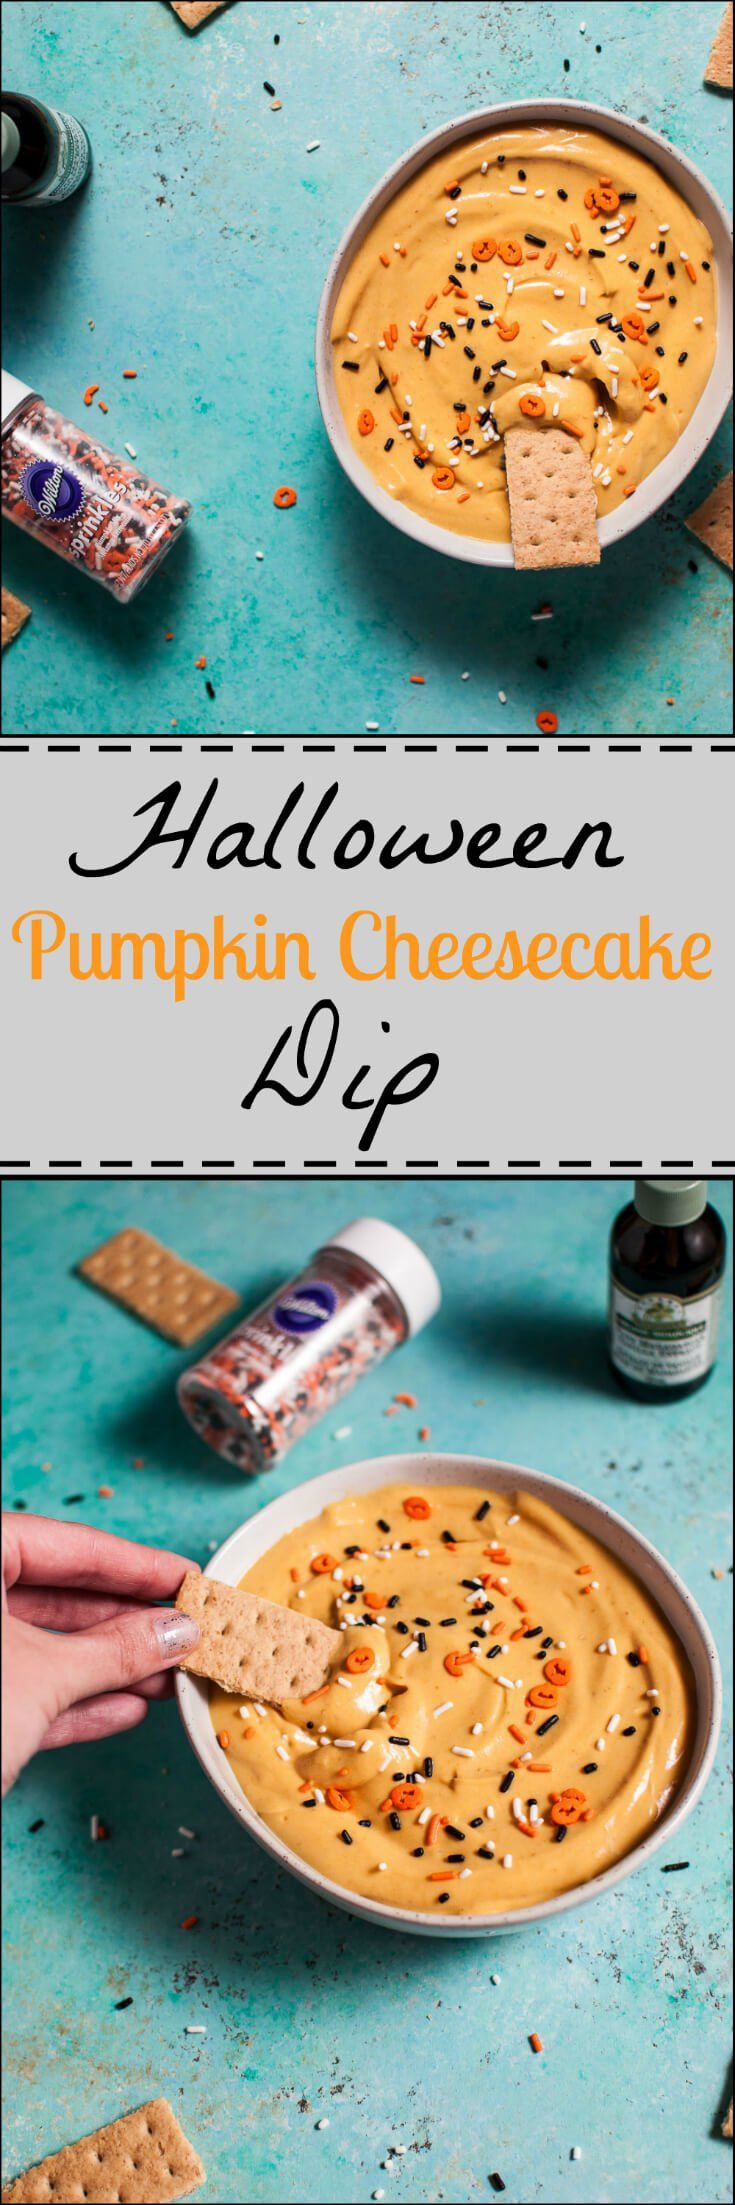 This sweet dessert dip is perfect for your Halloween party! Kids and adults alike will love it. Ready in 5 minutes!